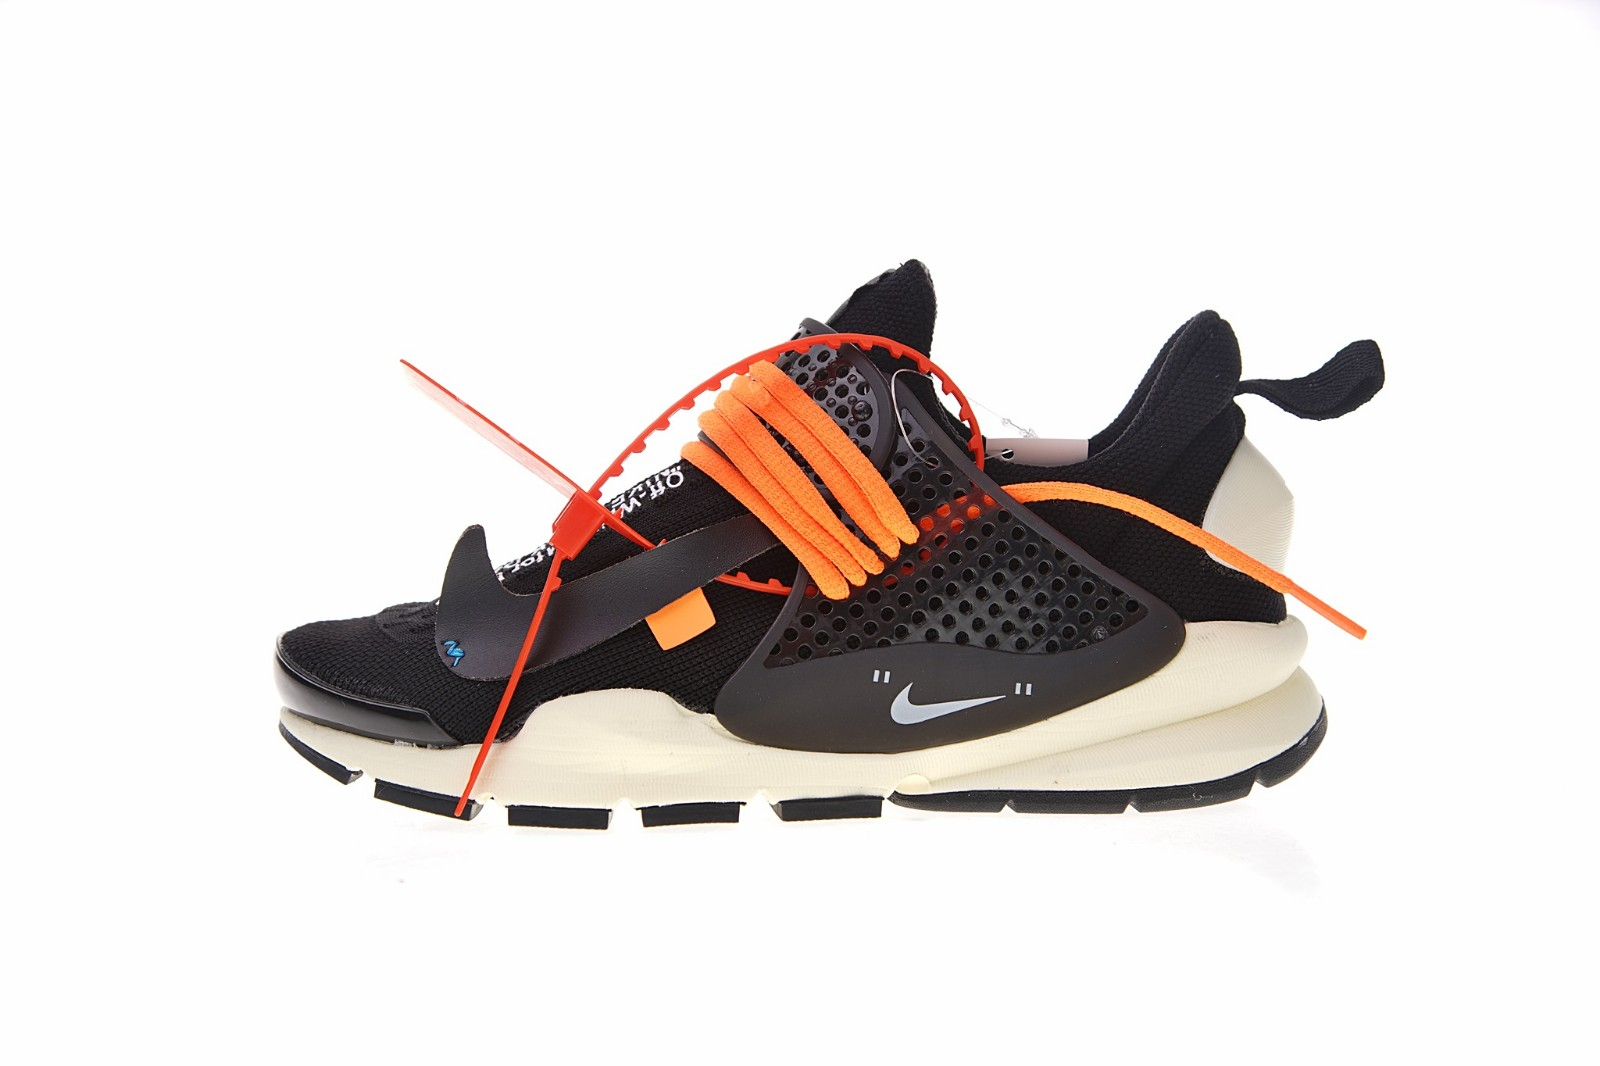 big sale c5b4b 2cd54 Prev Off White x Nike La Nike Sock Dart Black White Orange 819686-053